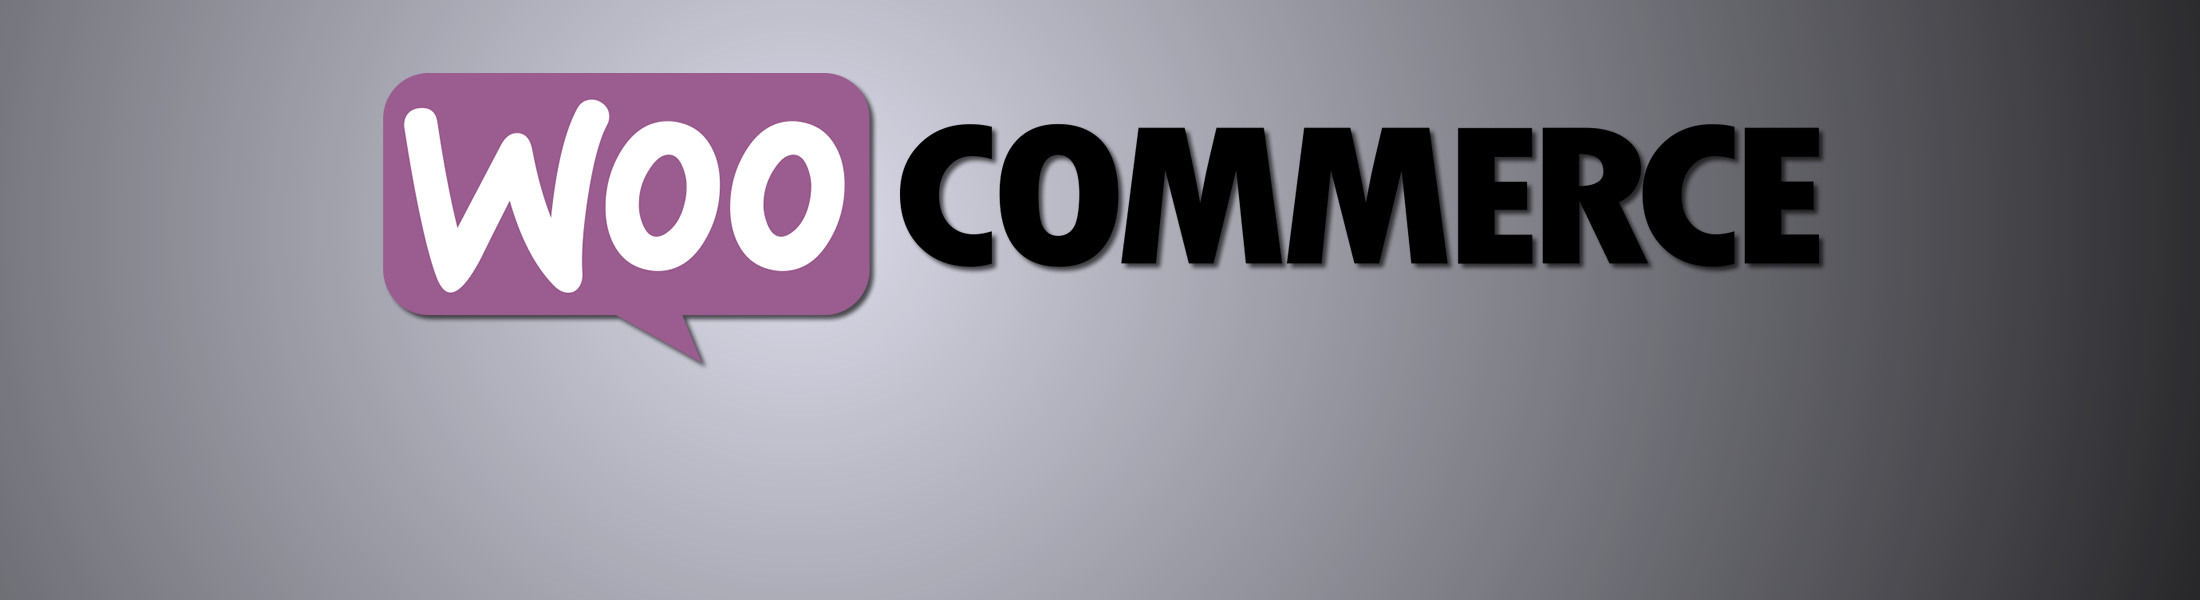 Silicon Dales are WooCommerce Affiliates featured image